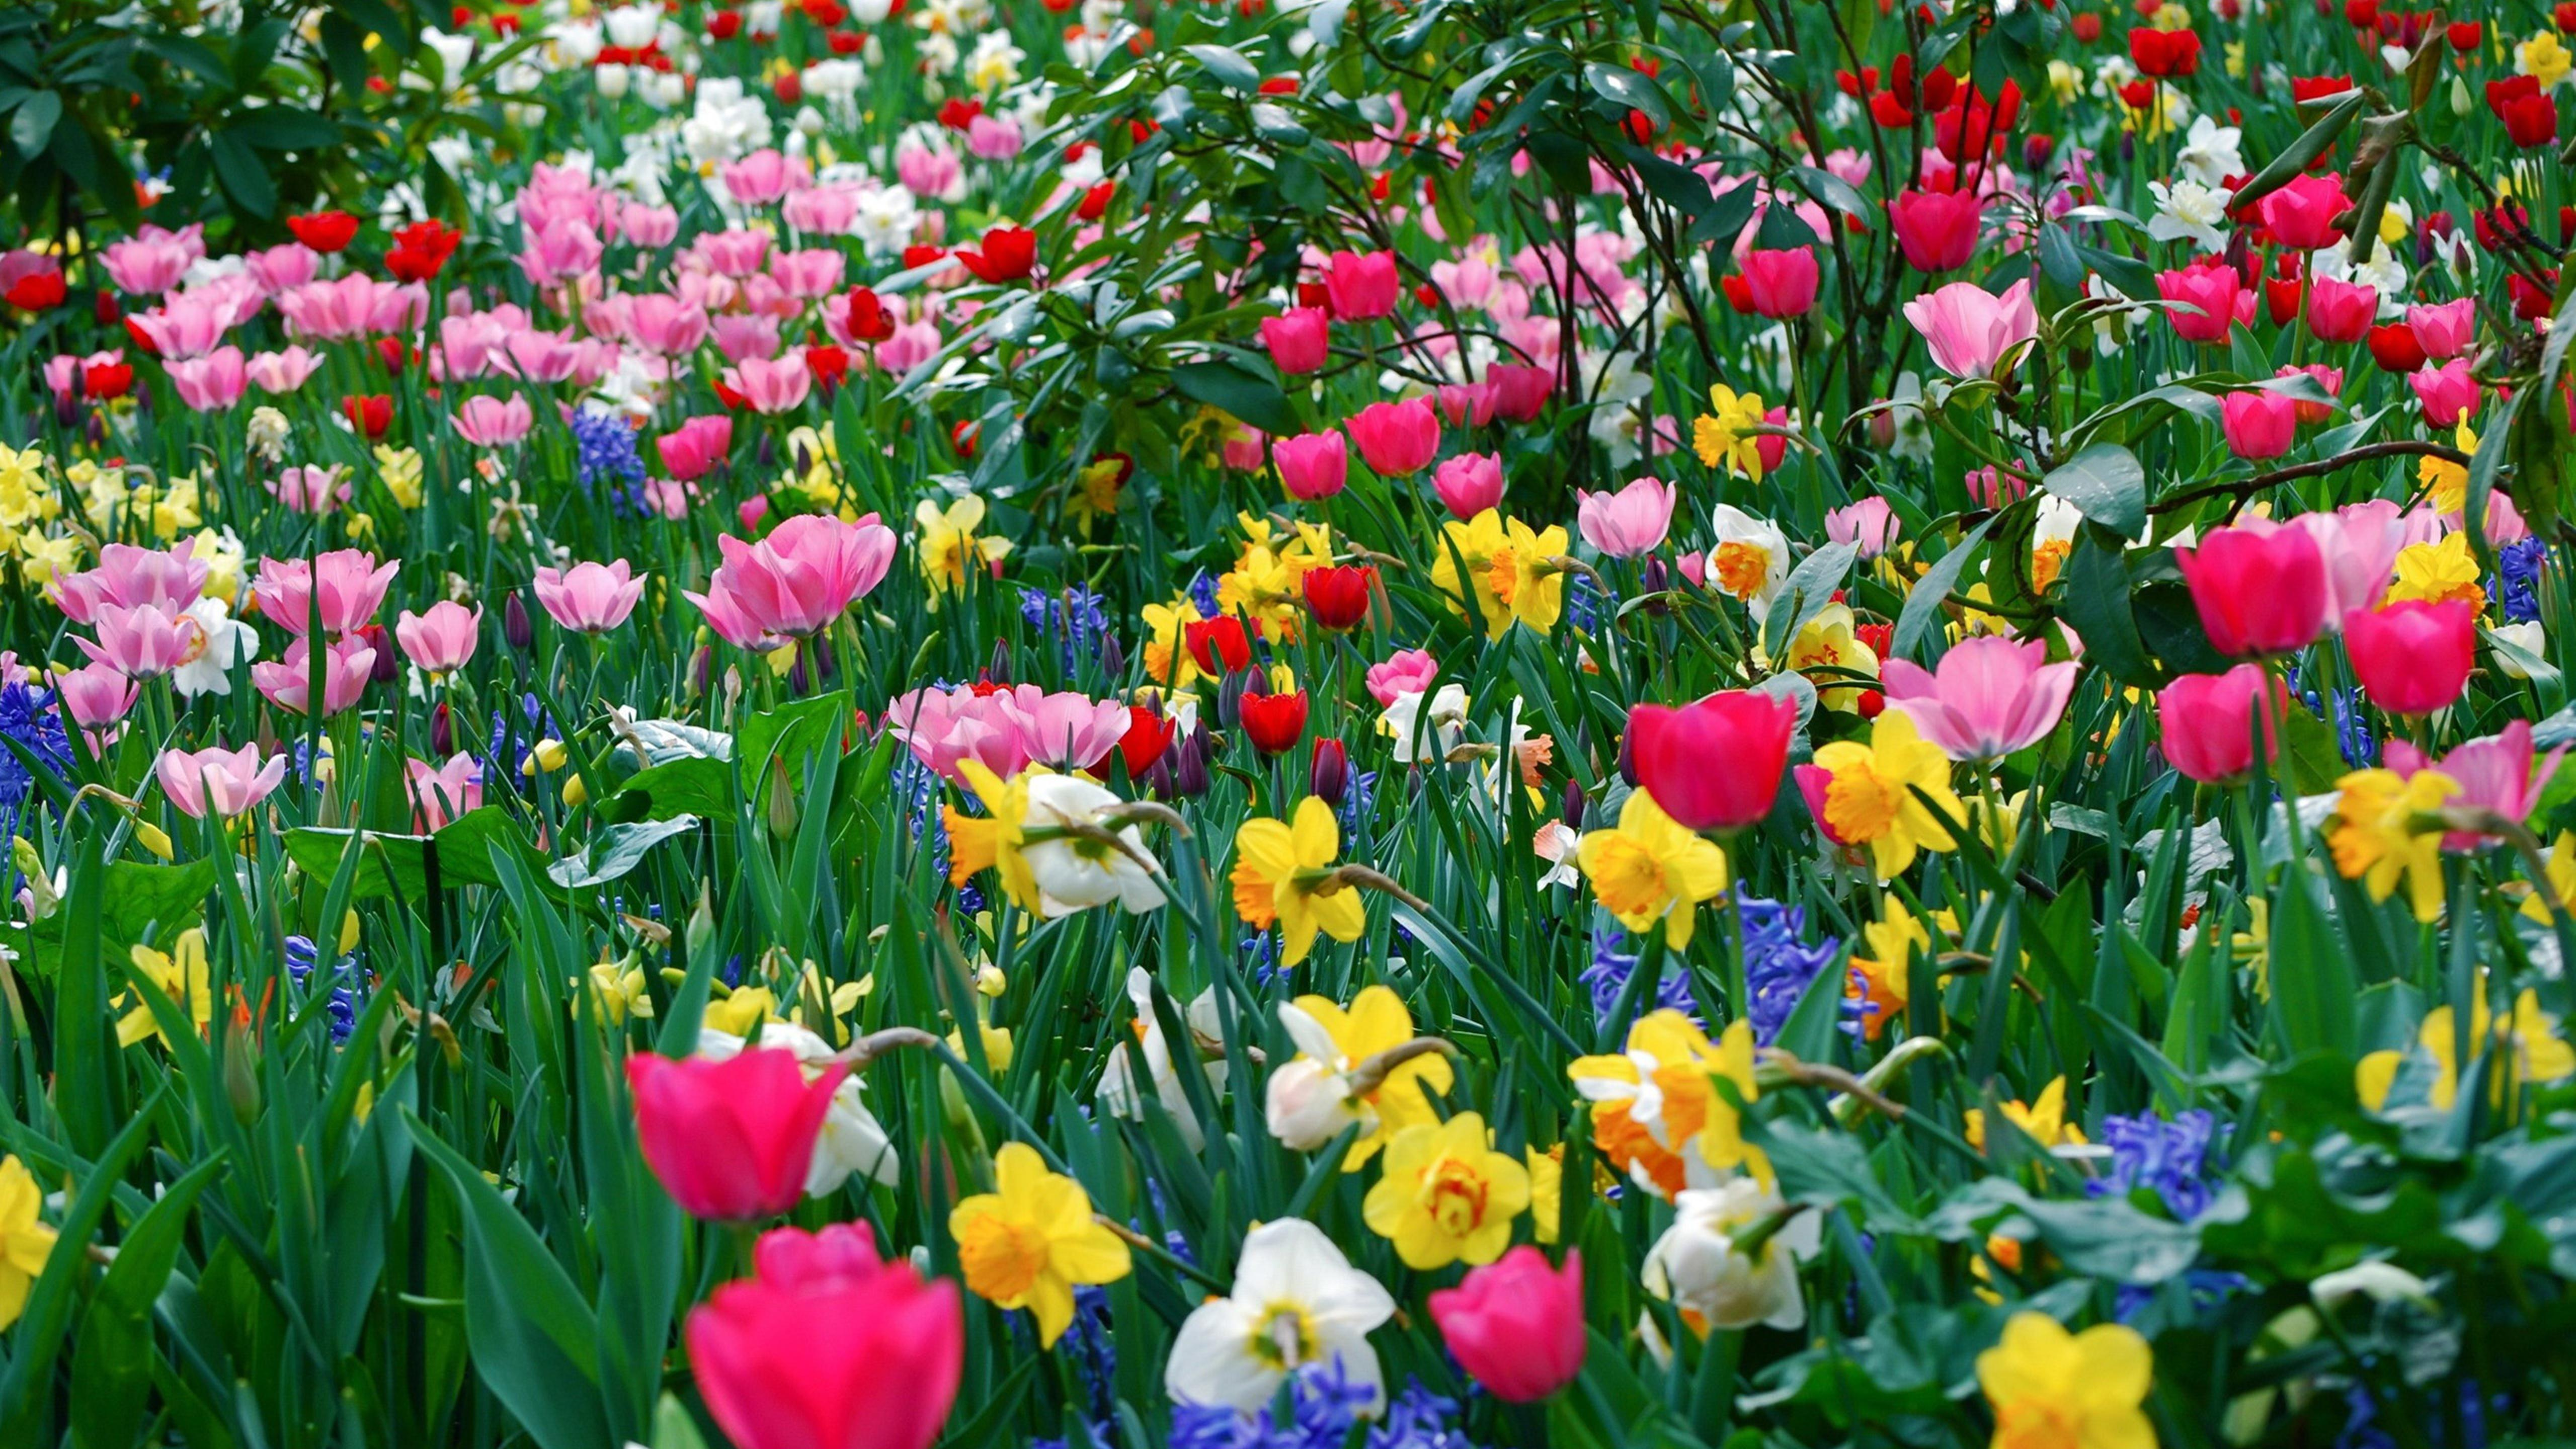 a field with pink tulips and white and yellow daffodils wallpaper